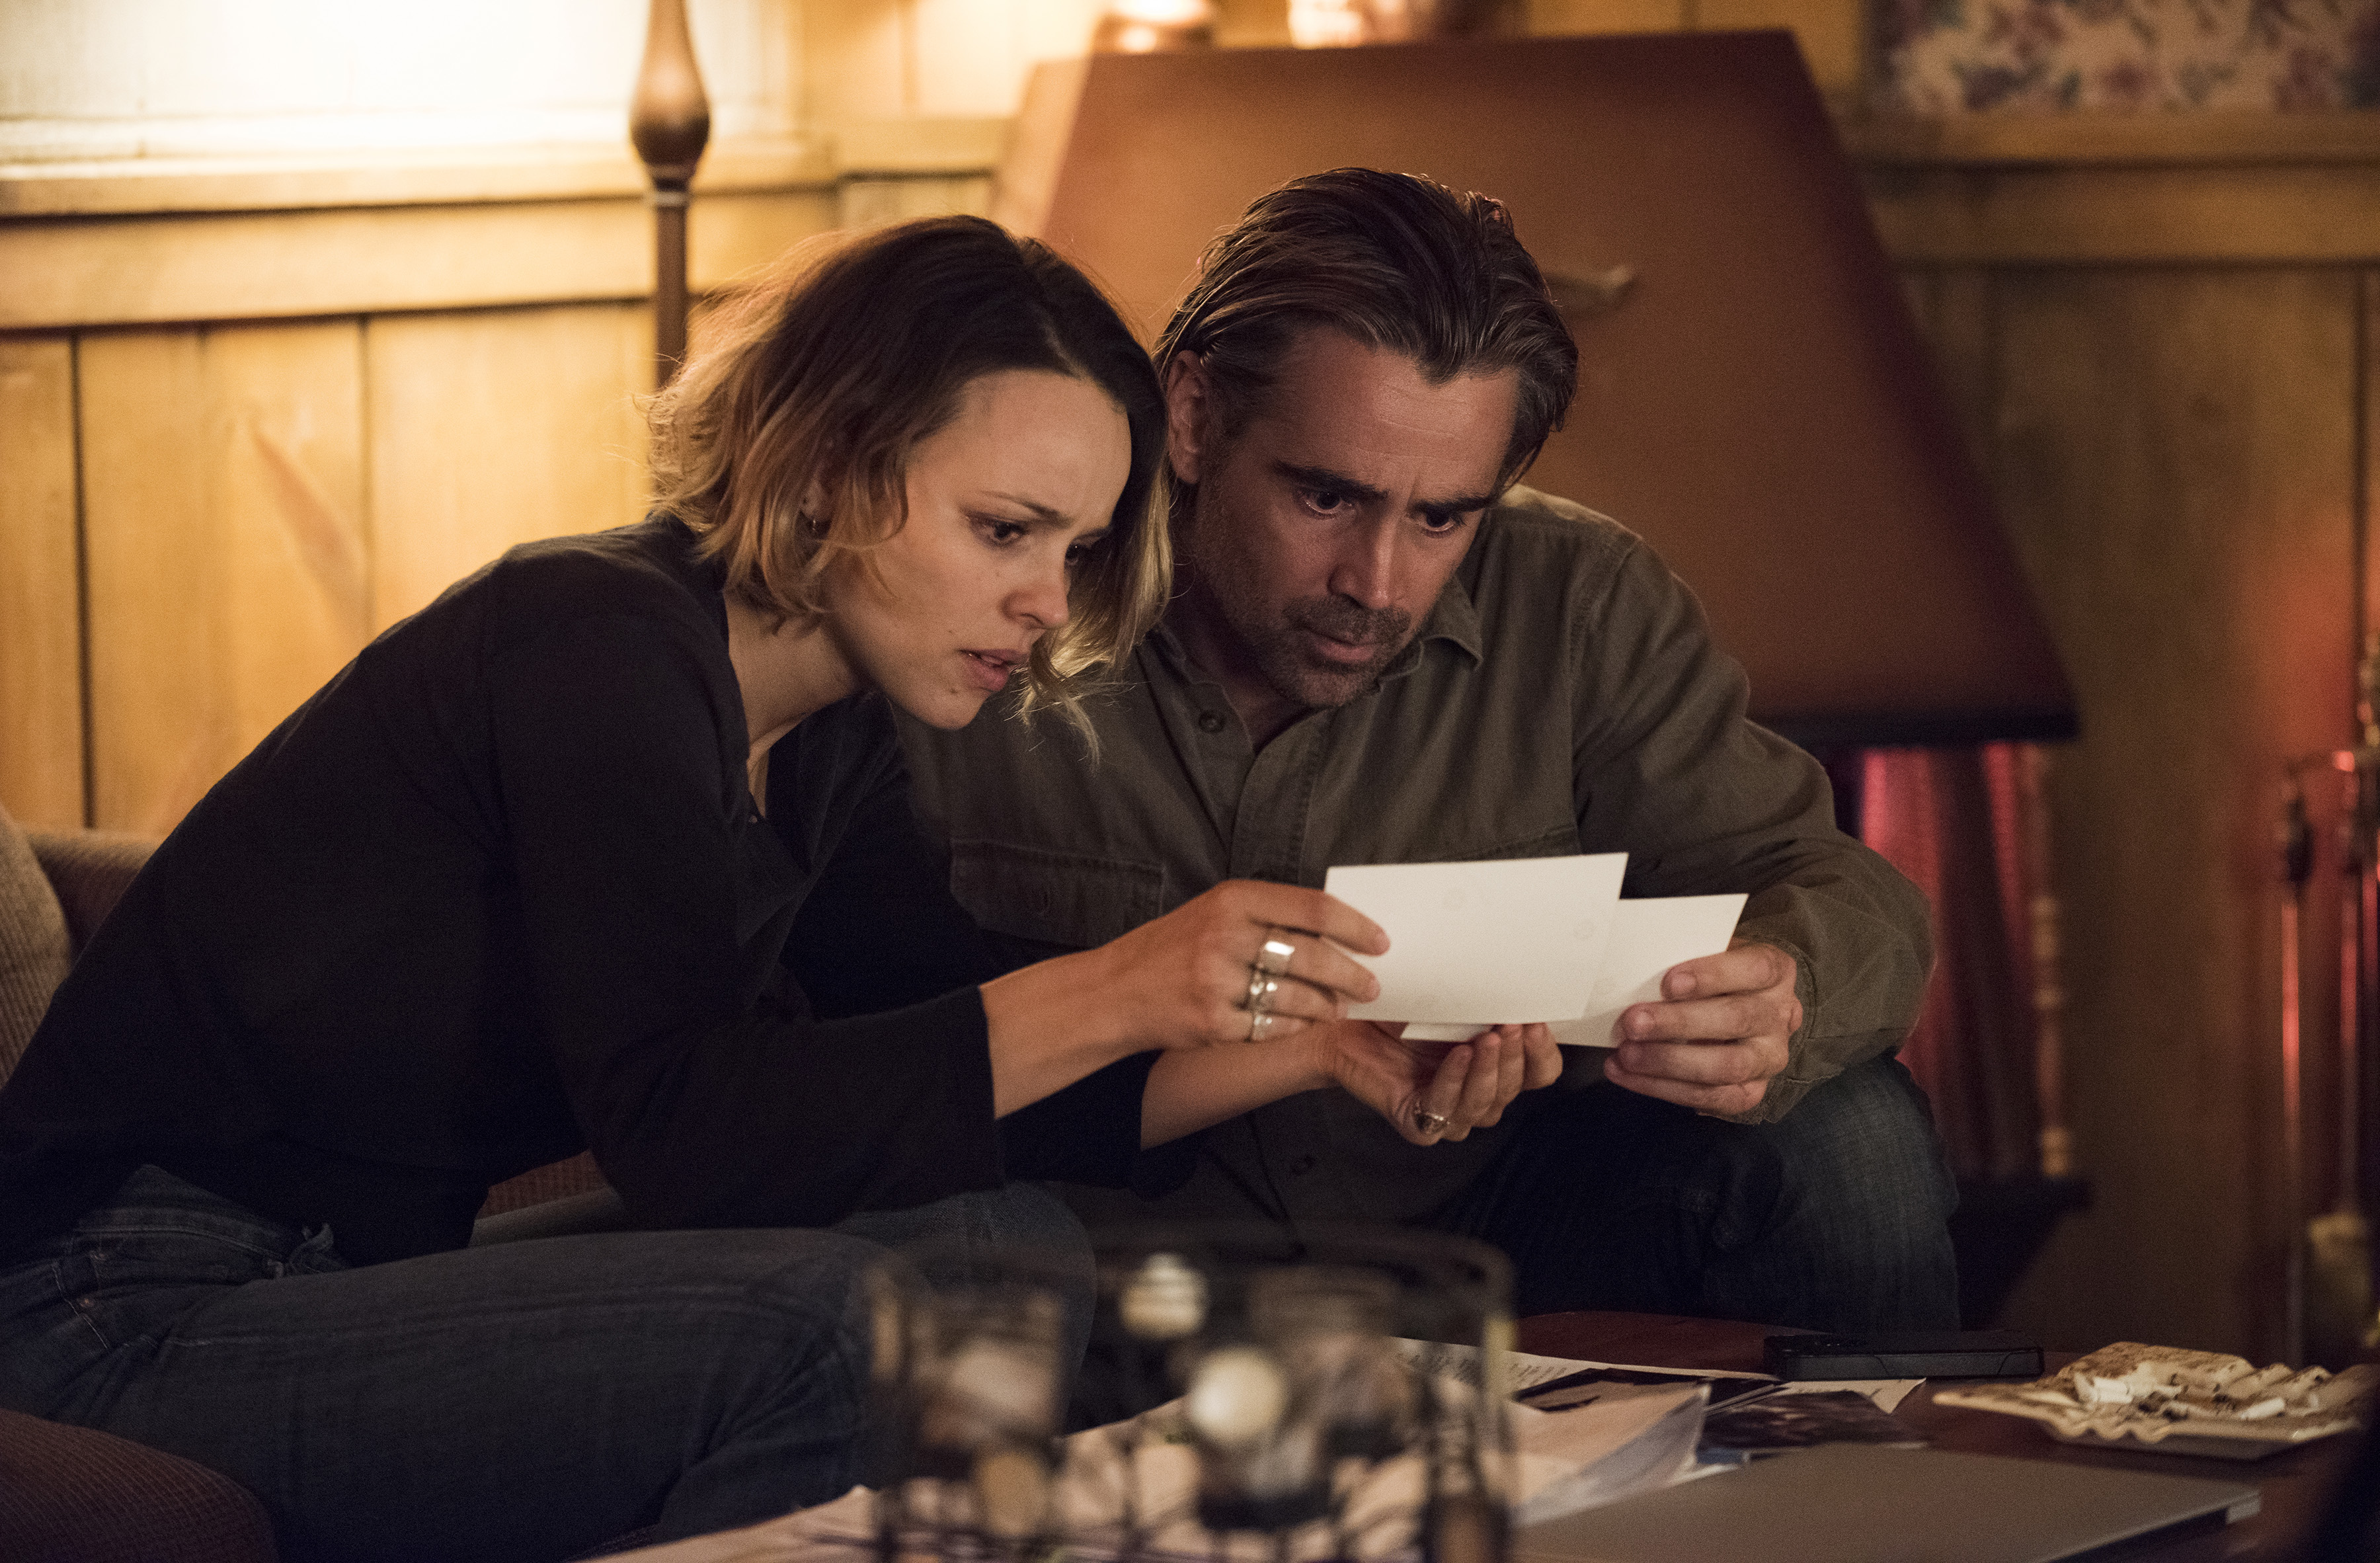 Ani (Rachel McAdams) and Ray (Colin Farrell) figure out some of what's going on. Or at least they think they do.